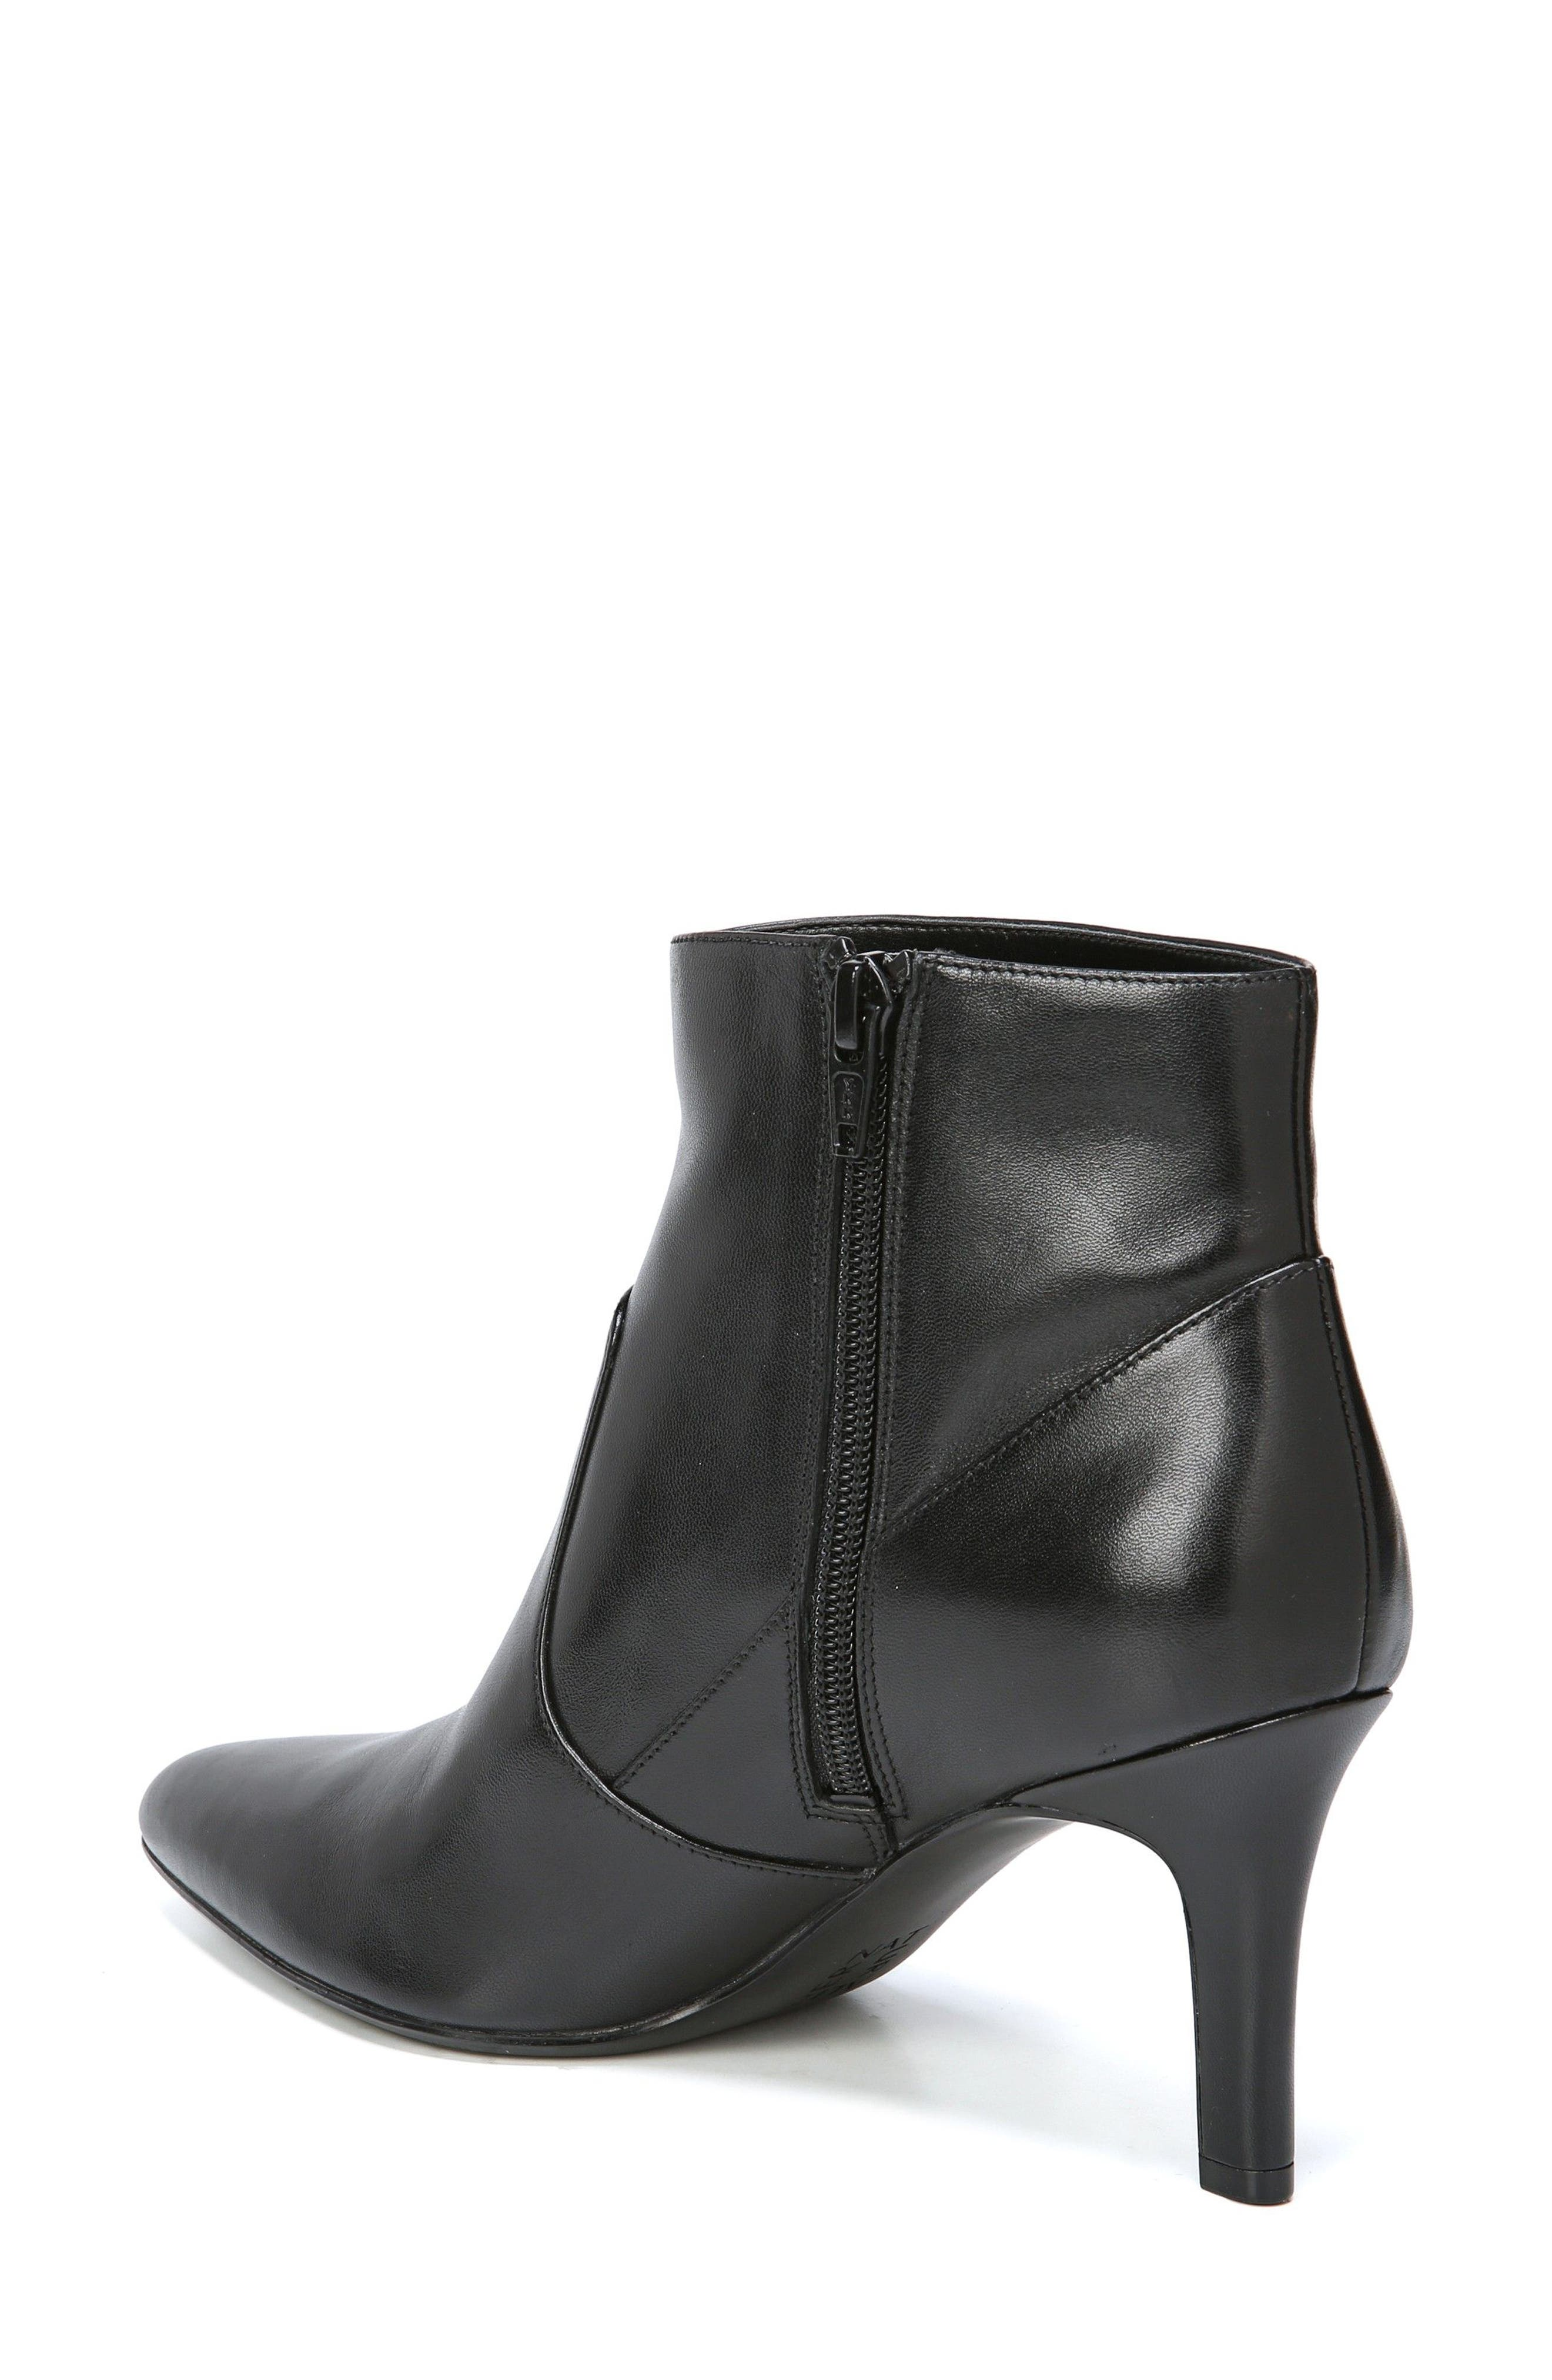 Nadine Bootie,                             Alternate thumbnail 2, color,                             Black Leather